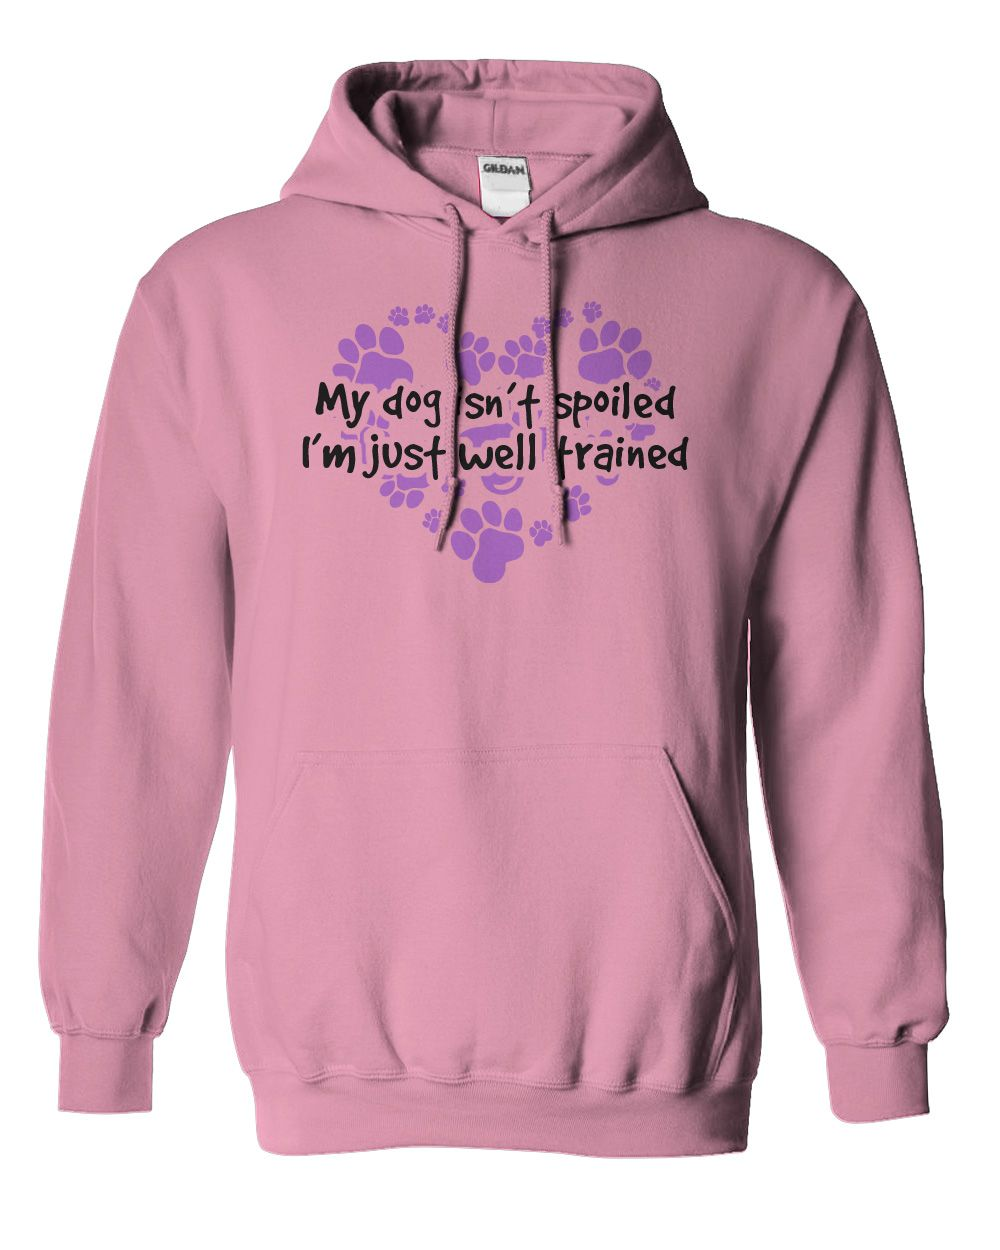 5f1eeb2bd My Dog Isn't Spoiled I'm Just Well Trained....Hoodie or T-Shirt. Click to  see here>>> www.sunfrogshirts.com/Pets/My-Dog-Isnt-Spoiled-pink-hoodie.html?  ...